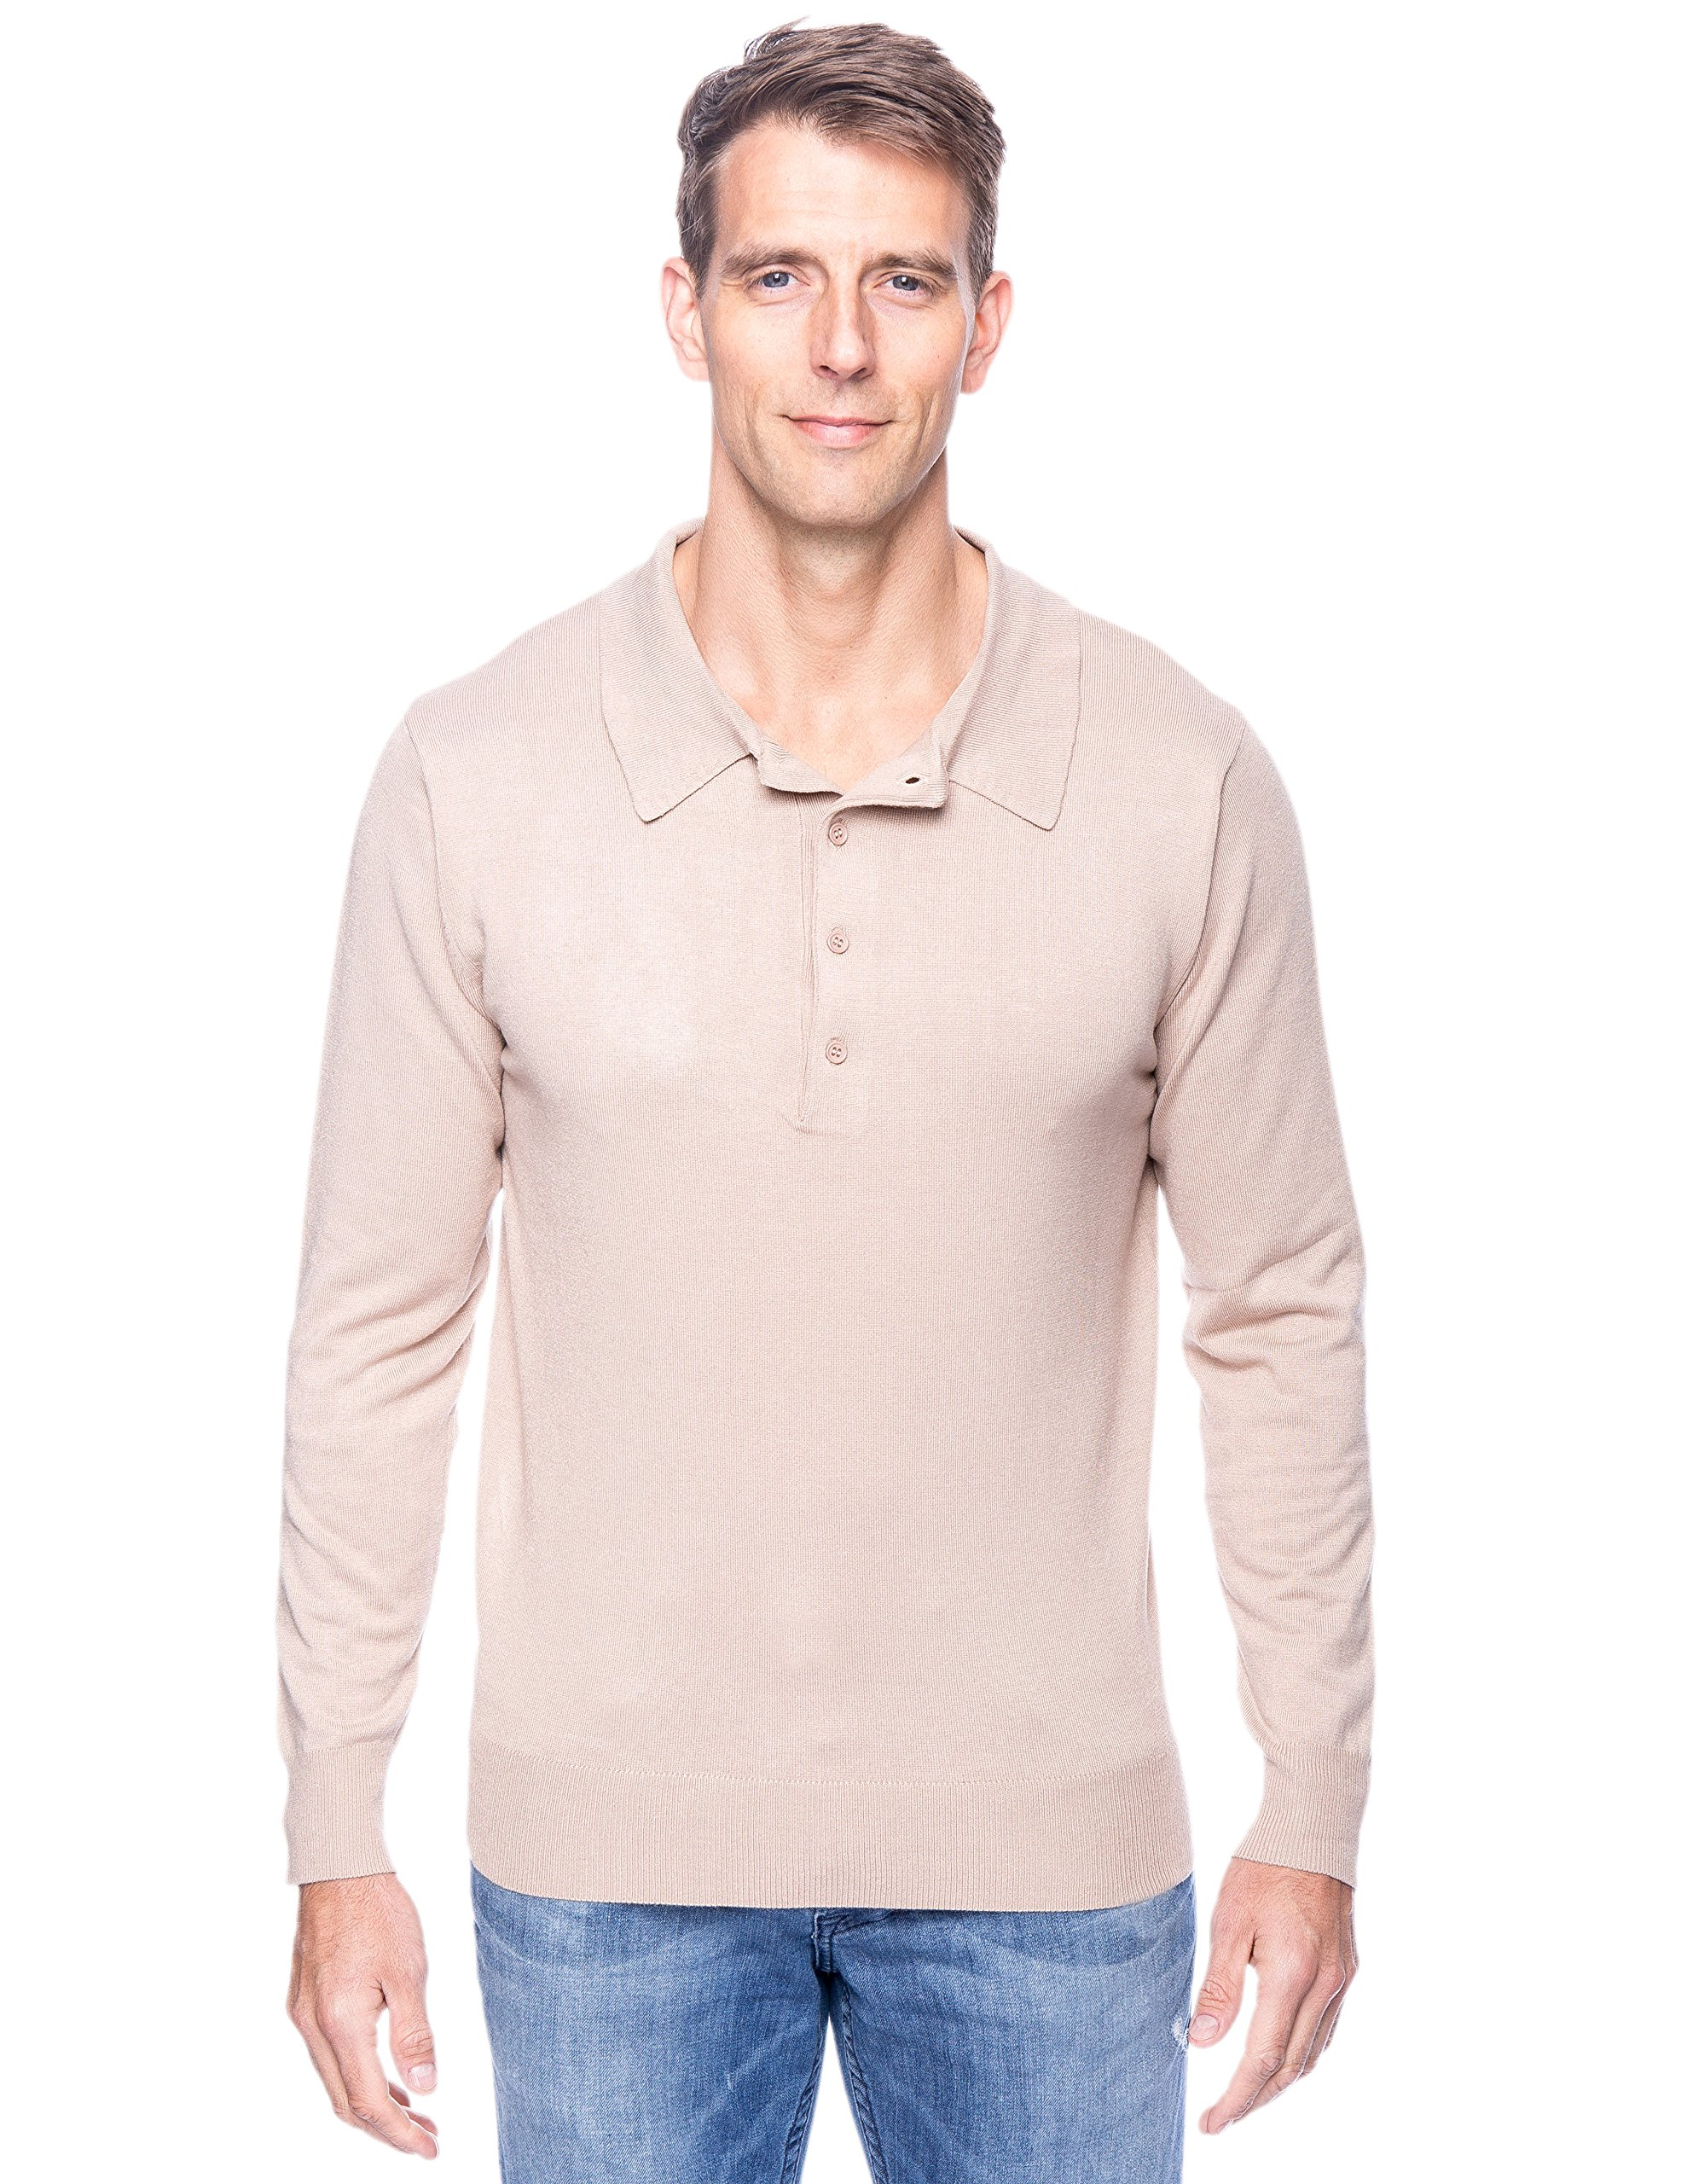 Tocco Reale Men's Classic Knit Long Sleeve Polo Sweater - Stone - M